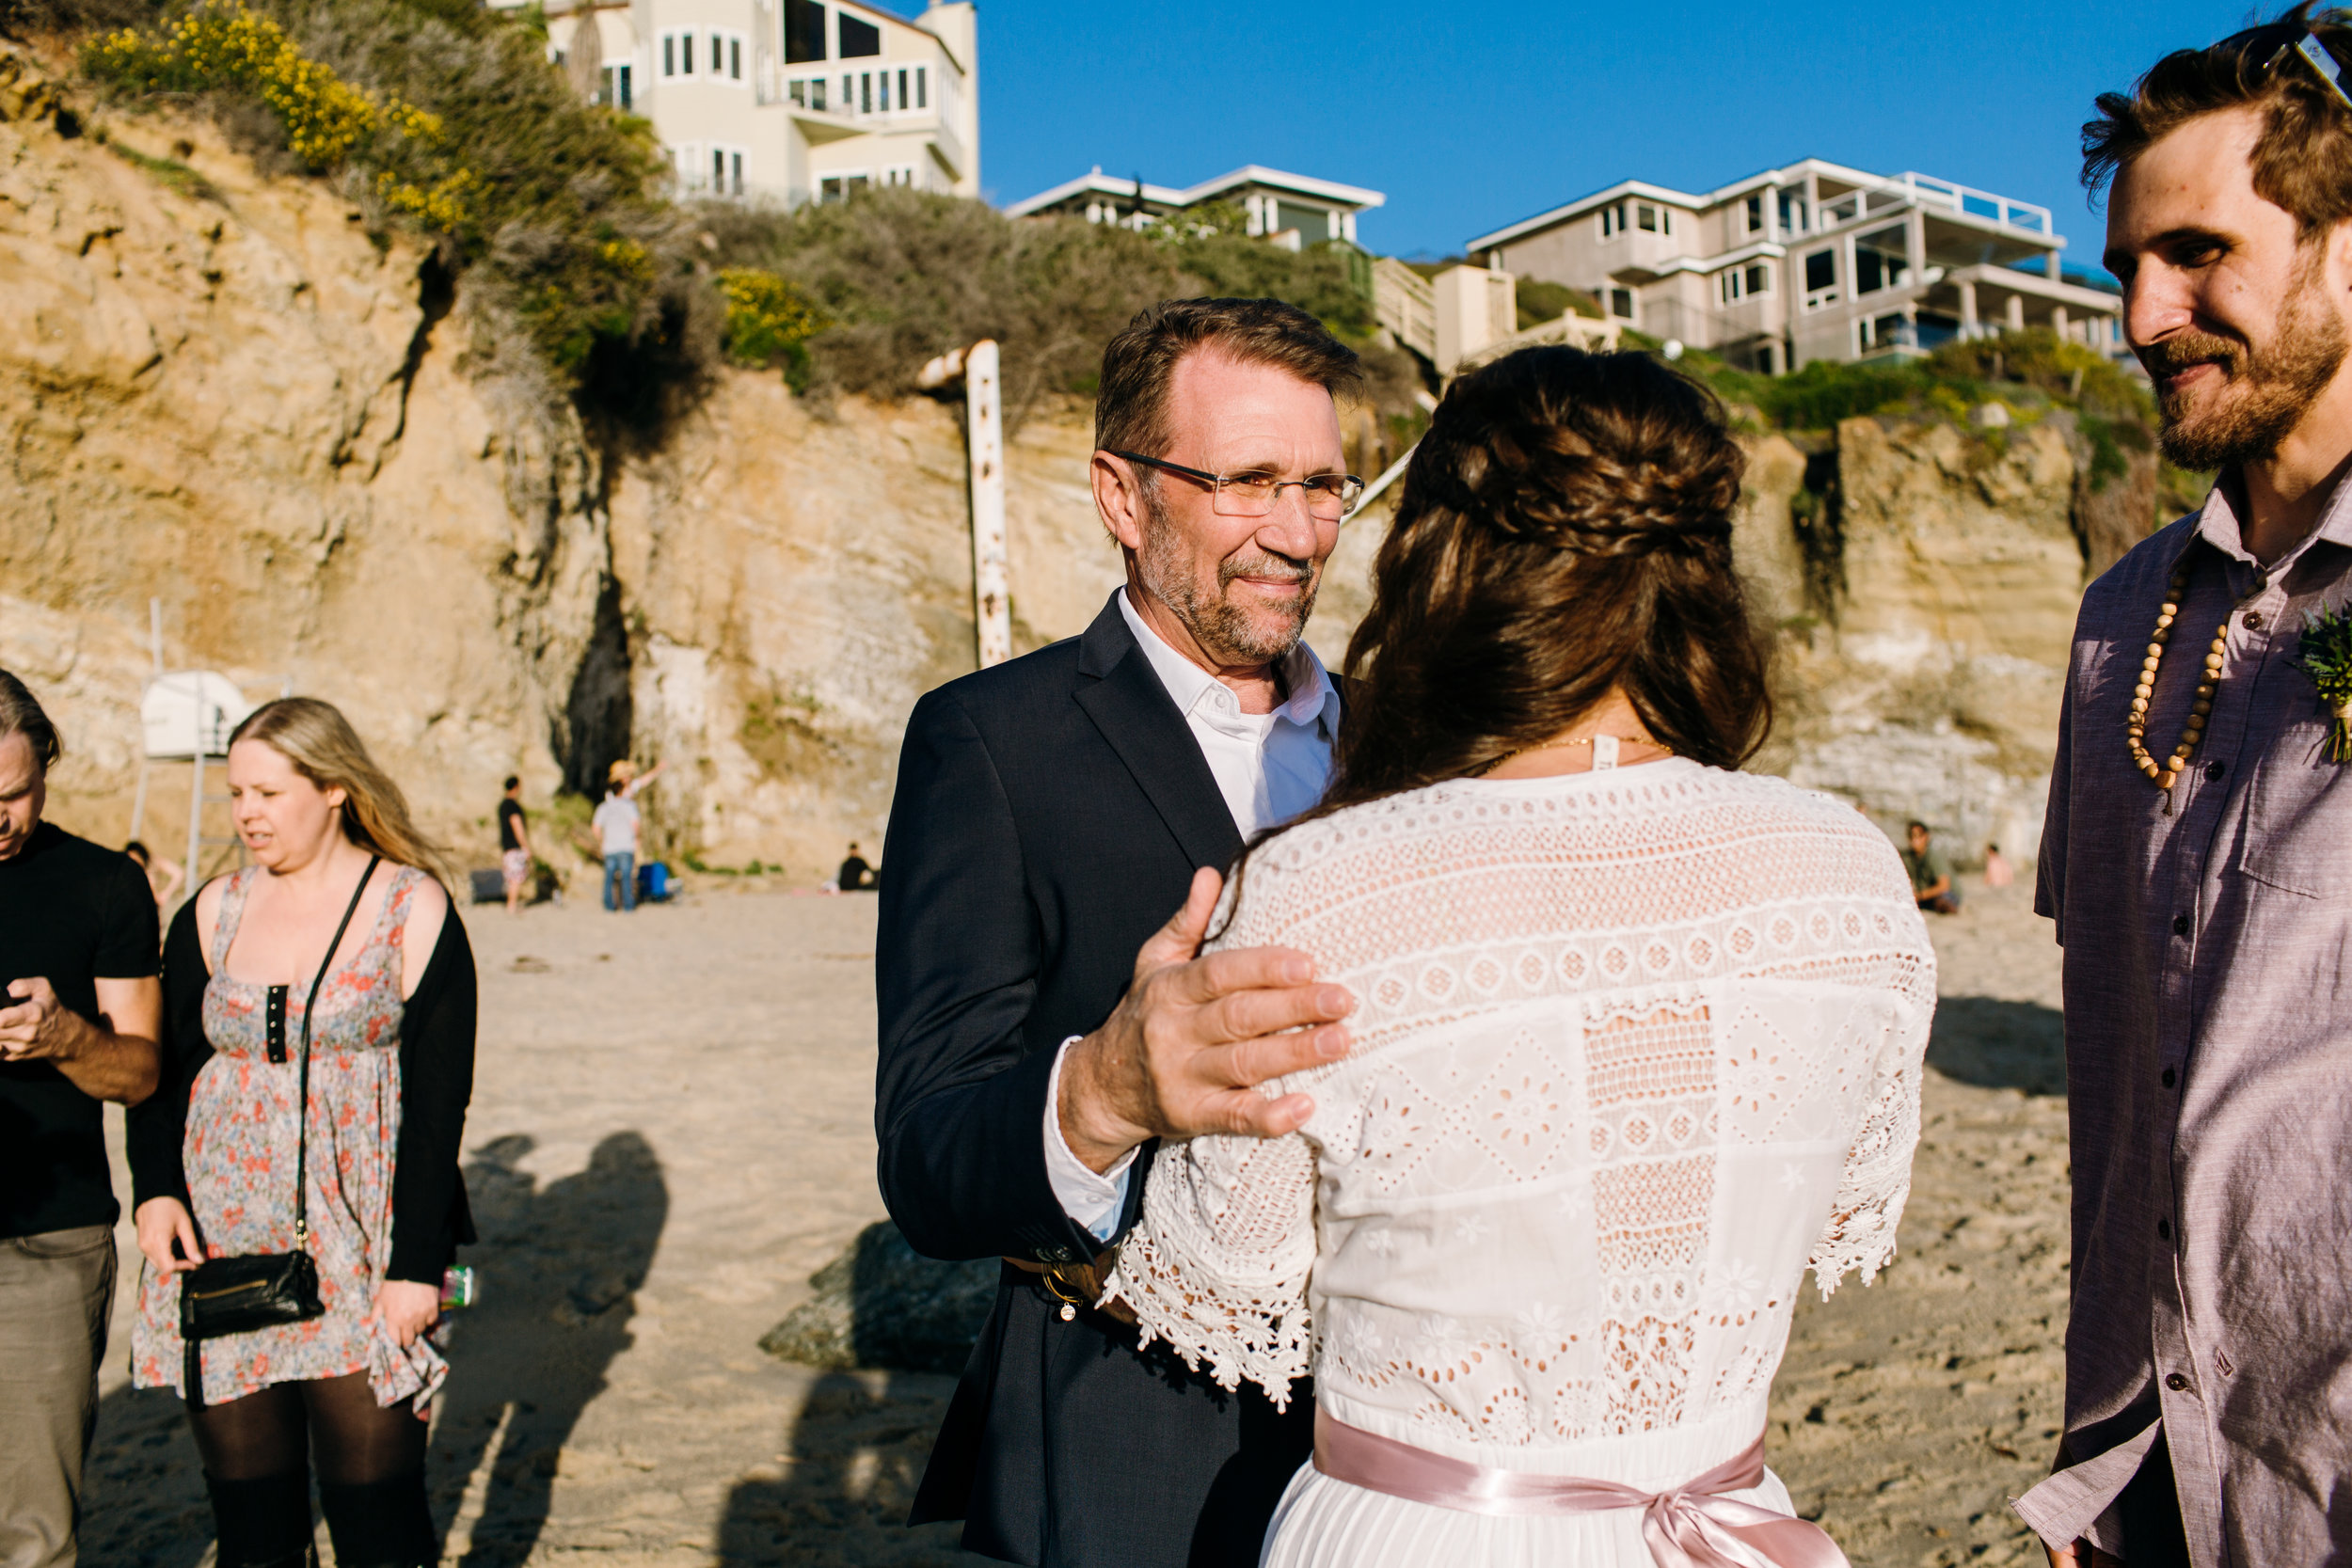 KaraNixonWeddings-LagunaBeach-Tablerock-Elopement-22.jpg